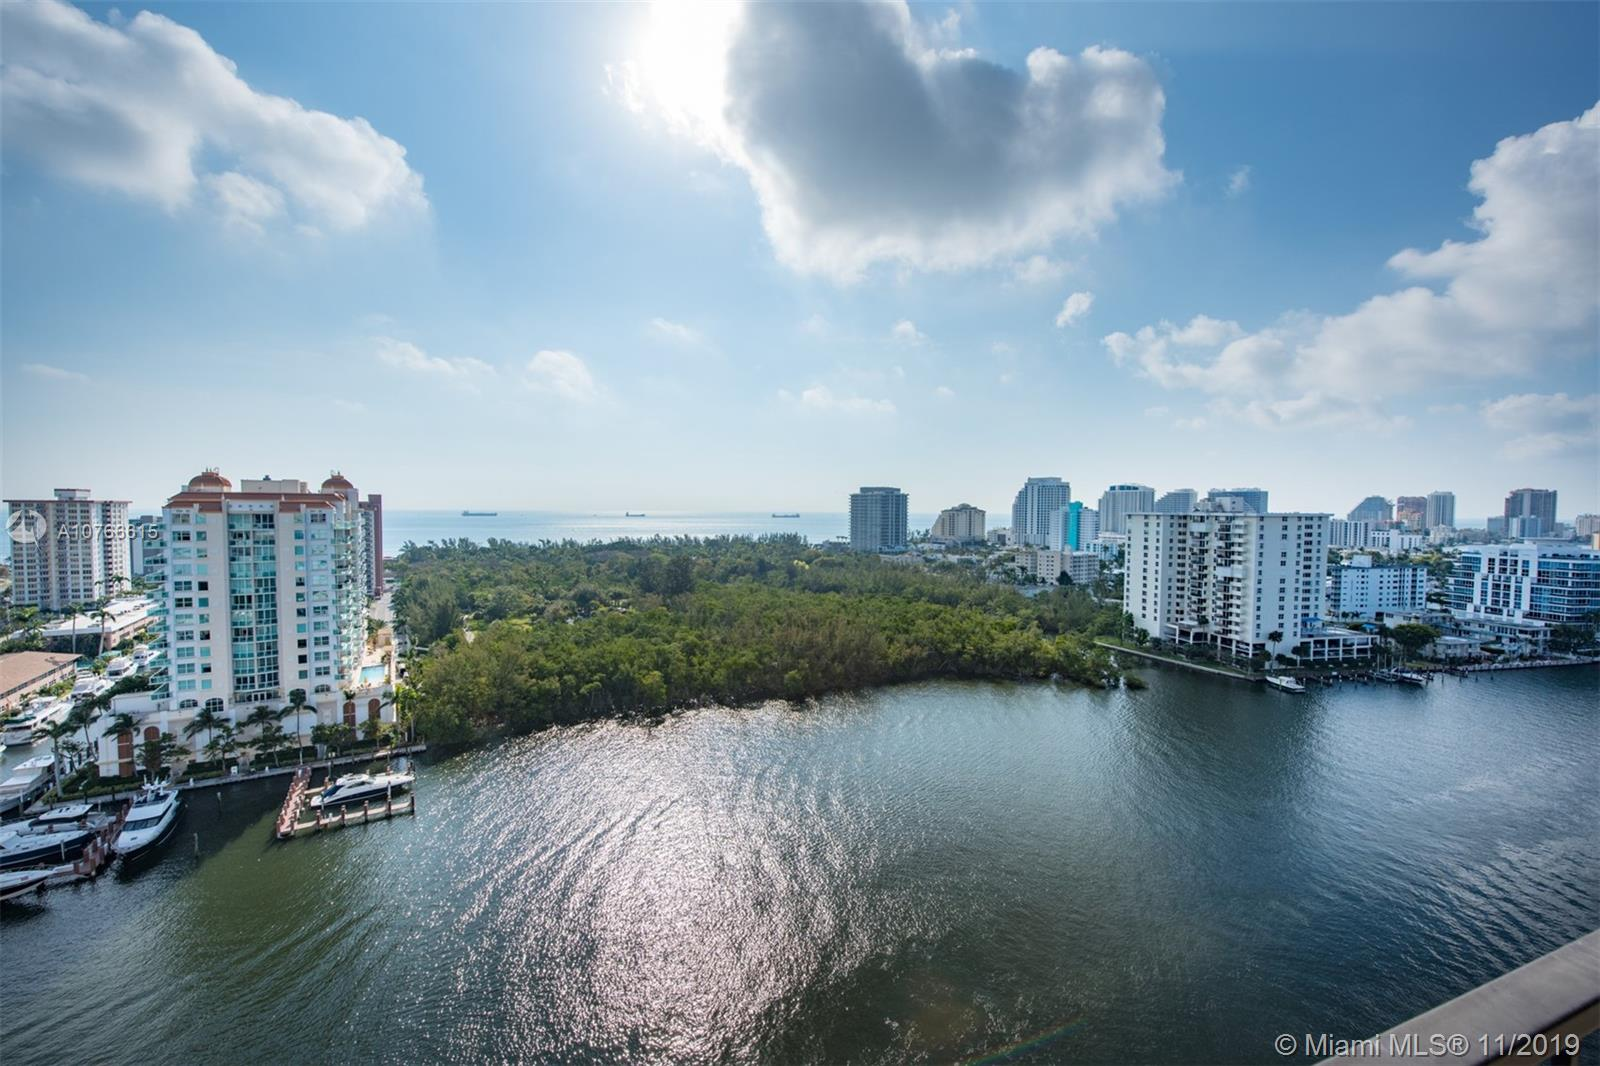 COMPLETELY RENOVATED INTRACOASTAL CONDO WITH BREATHTAKING DIRECT OCEAN AND INTRACOASTAL VIEWS WHICH MUST BE SEEN TO BE APPRECIATED. ROOFTOP POOL, CLUB ROOM AND PANORMIC 360 DEGREE VIEWS OF OCEAN AND INTRACOASTAL .  SEMIPRIVATE ELEVATOR ENTRY,  ONSITE MANAGER WITH 24 HOUR SECURITY, FITNESS CENTER, AND GALLERIA MALL A SHORT WALK.